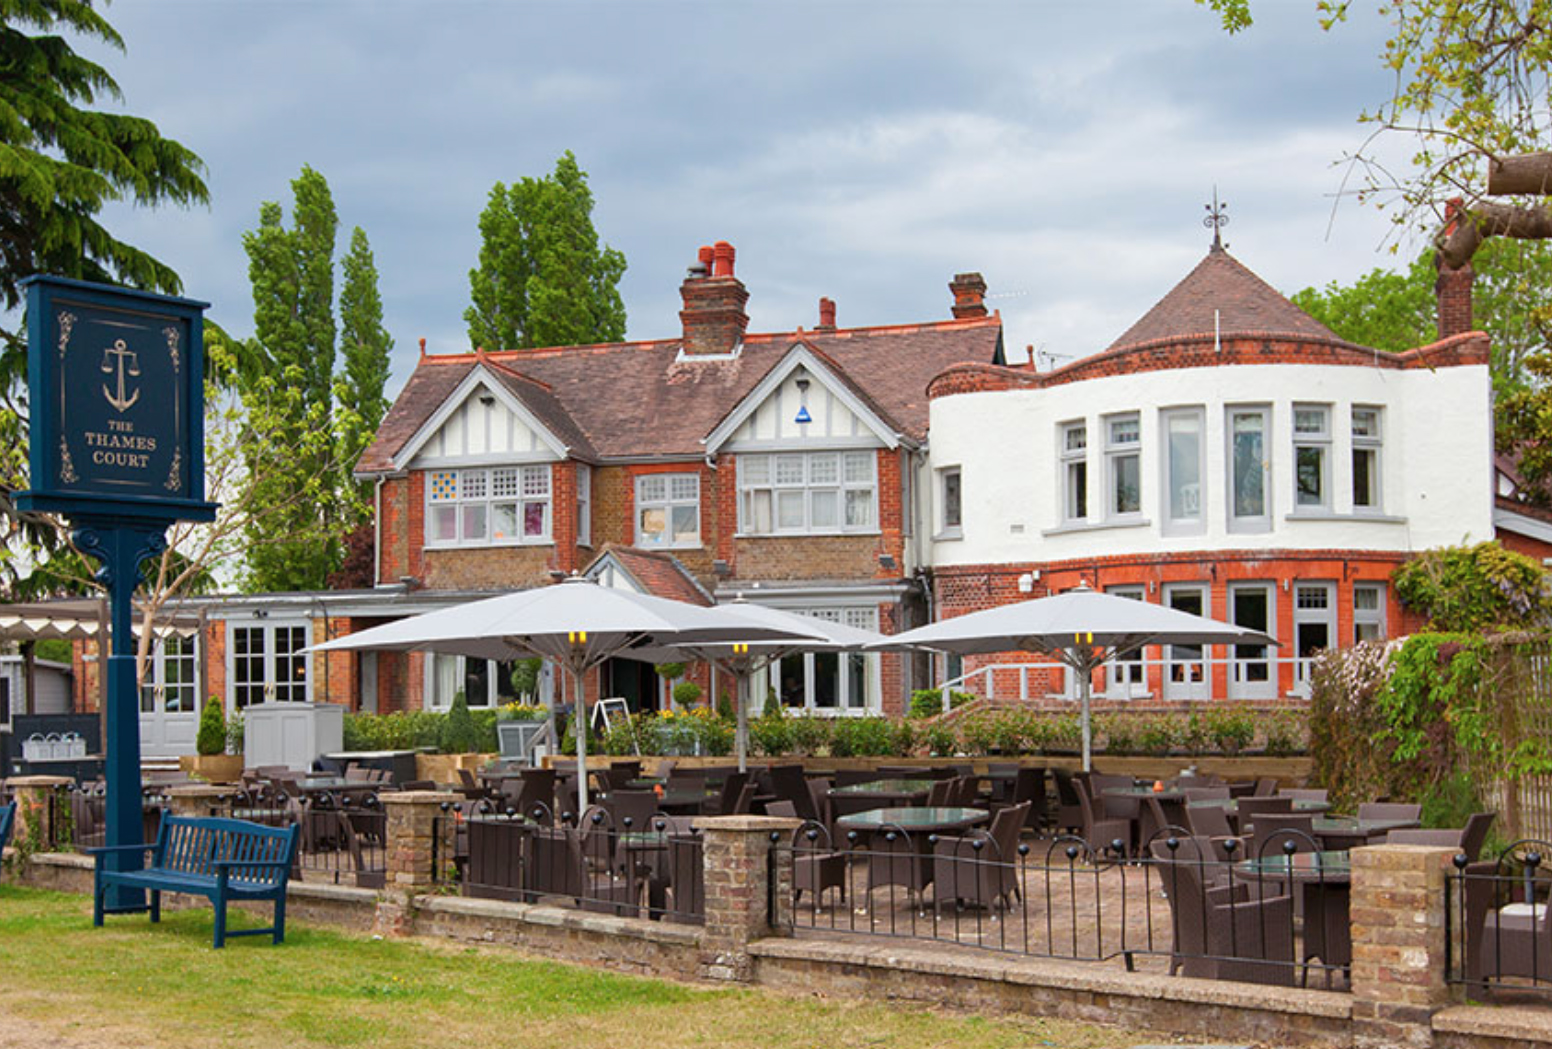 Thames Court Pub, Shepperton, Greater London. Staycation Inspiration by Malvern Garden Buildings